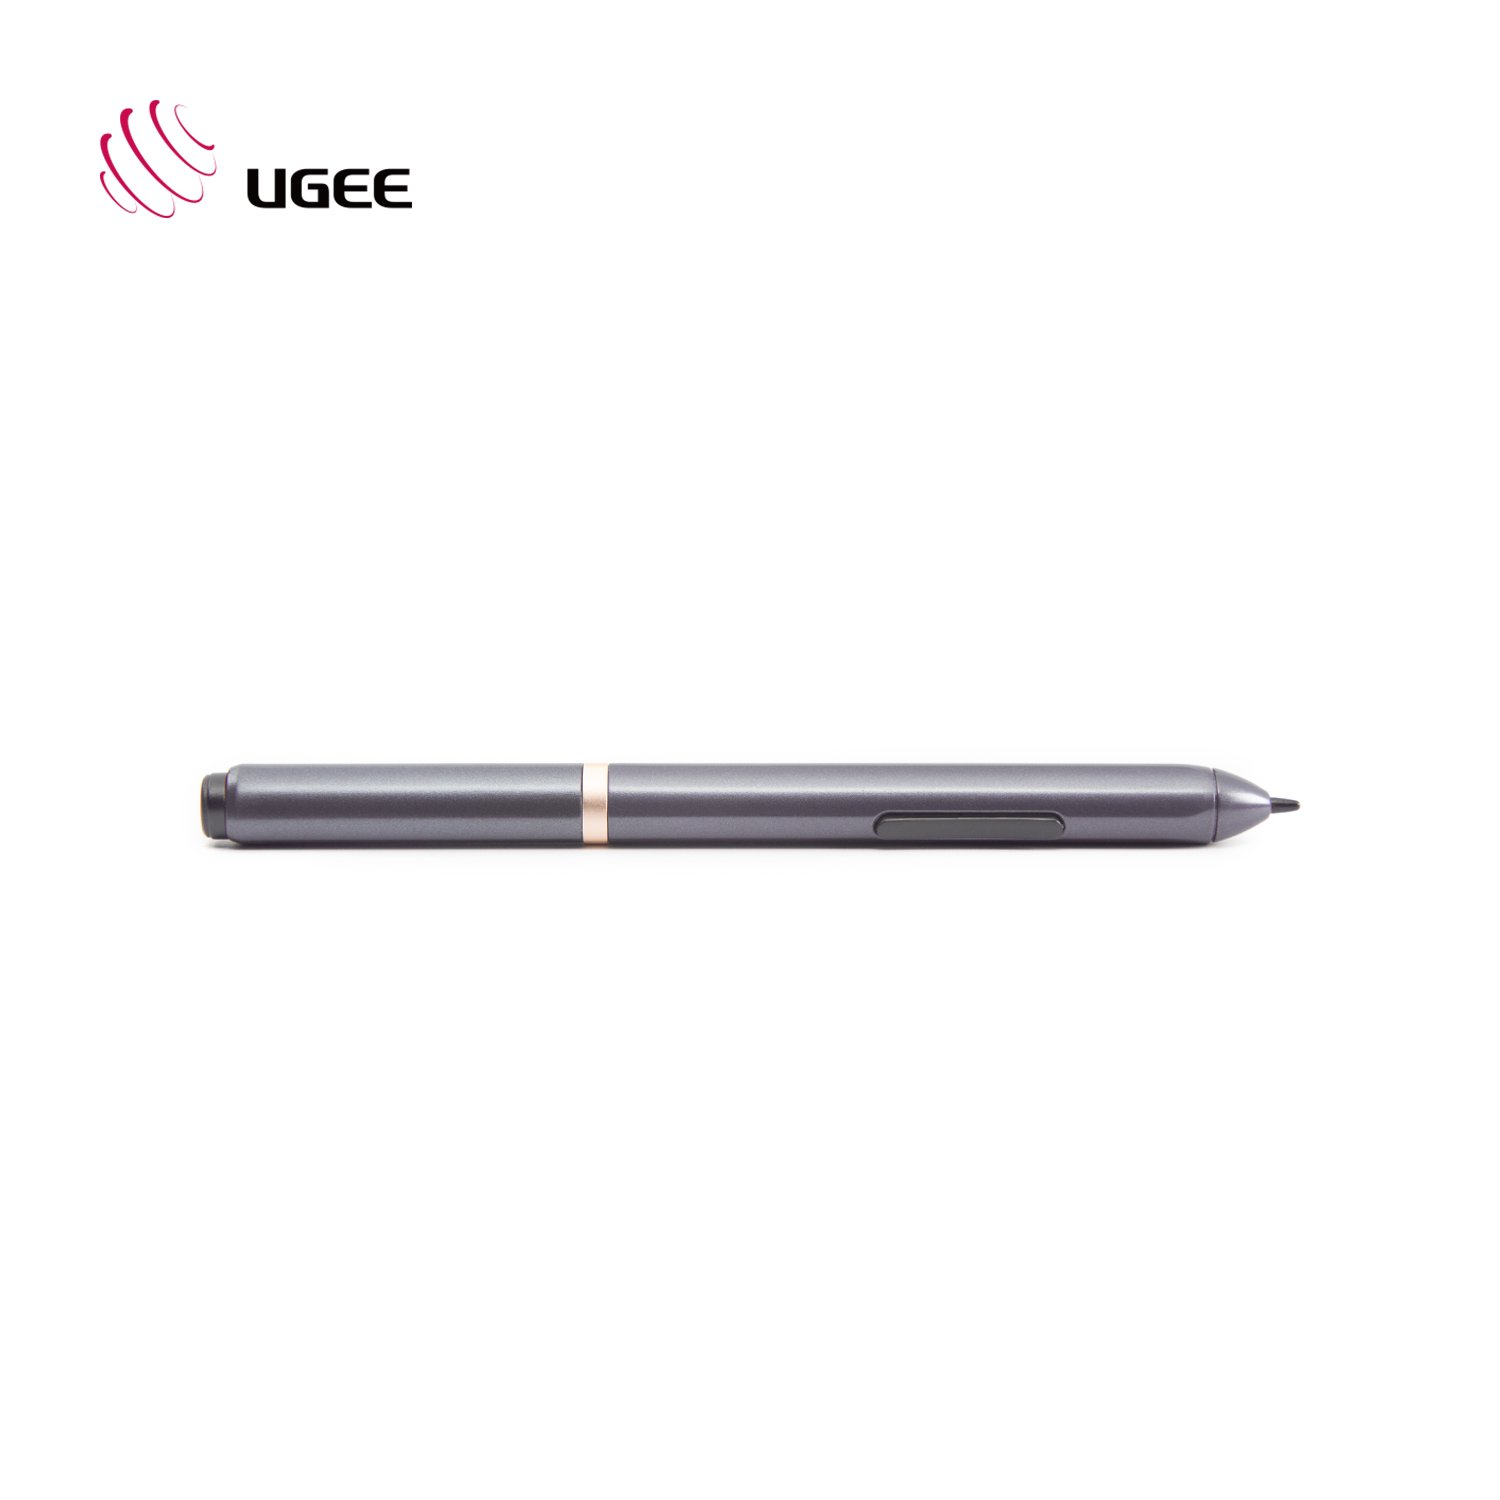 Ugee P03 battery-free pen Accessories image3